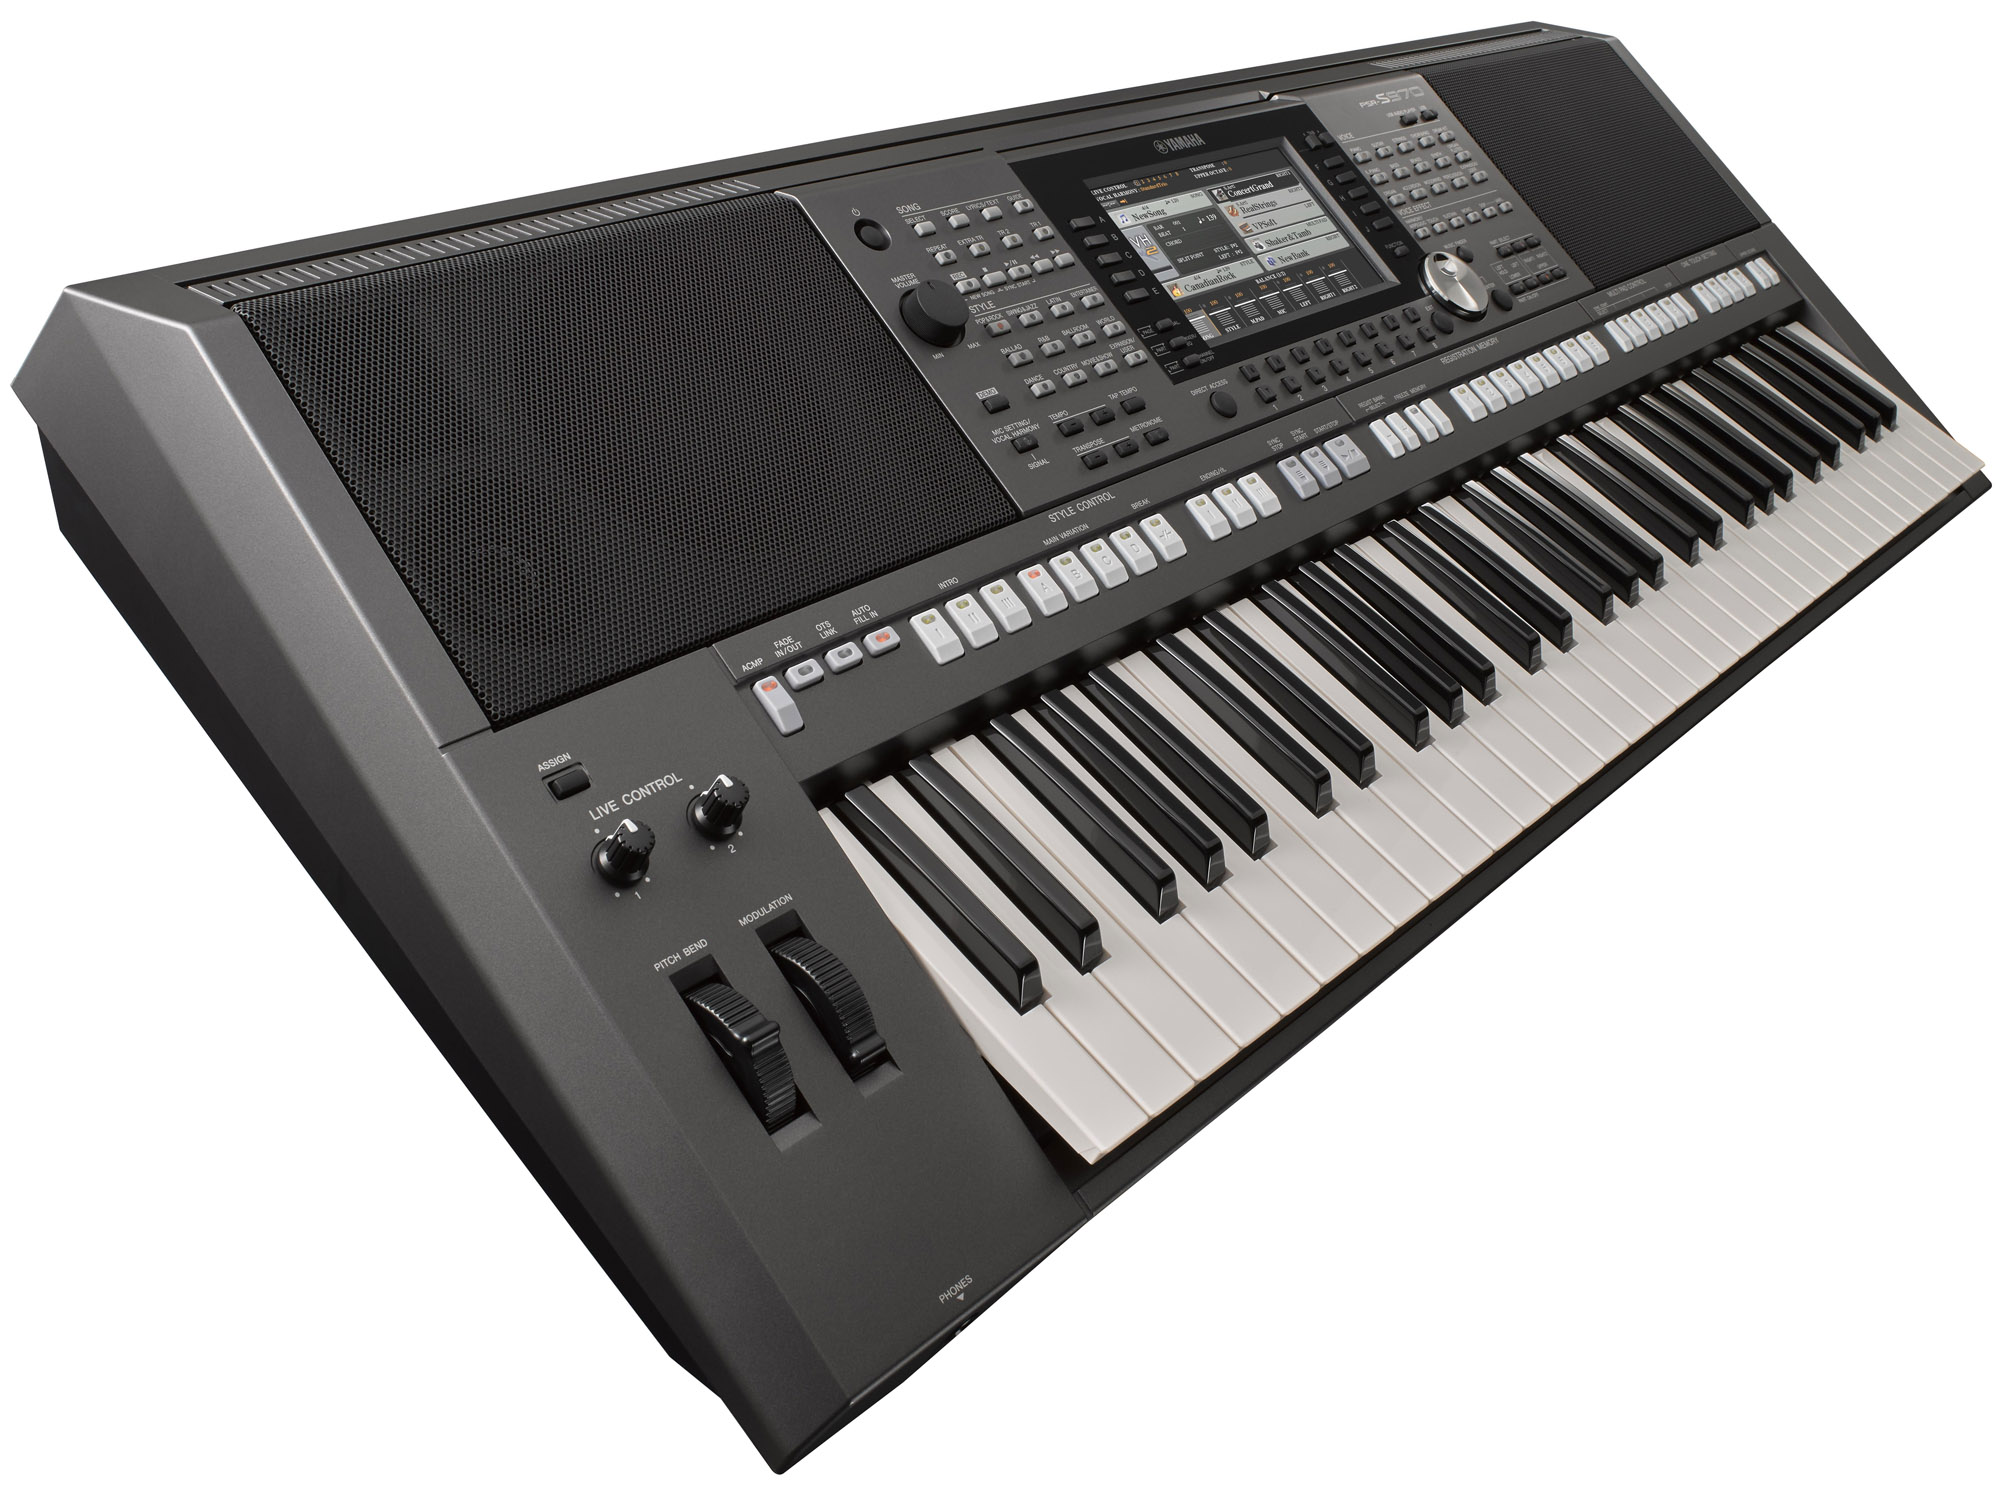 yamaha psr s970 arranger workstation keyboard yamaha